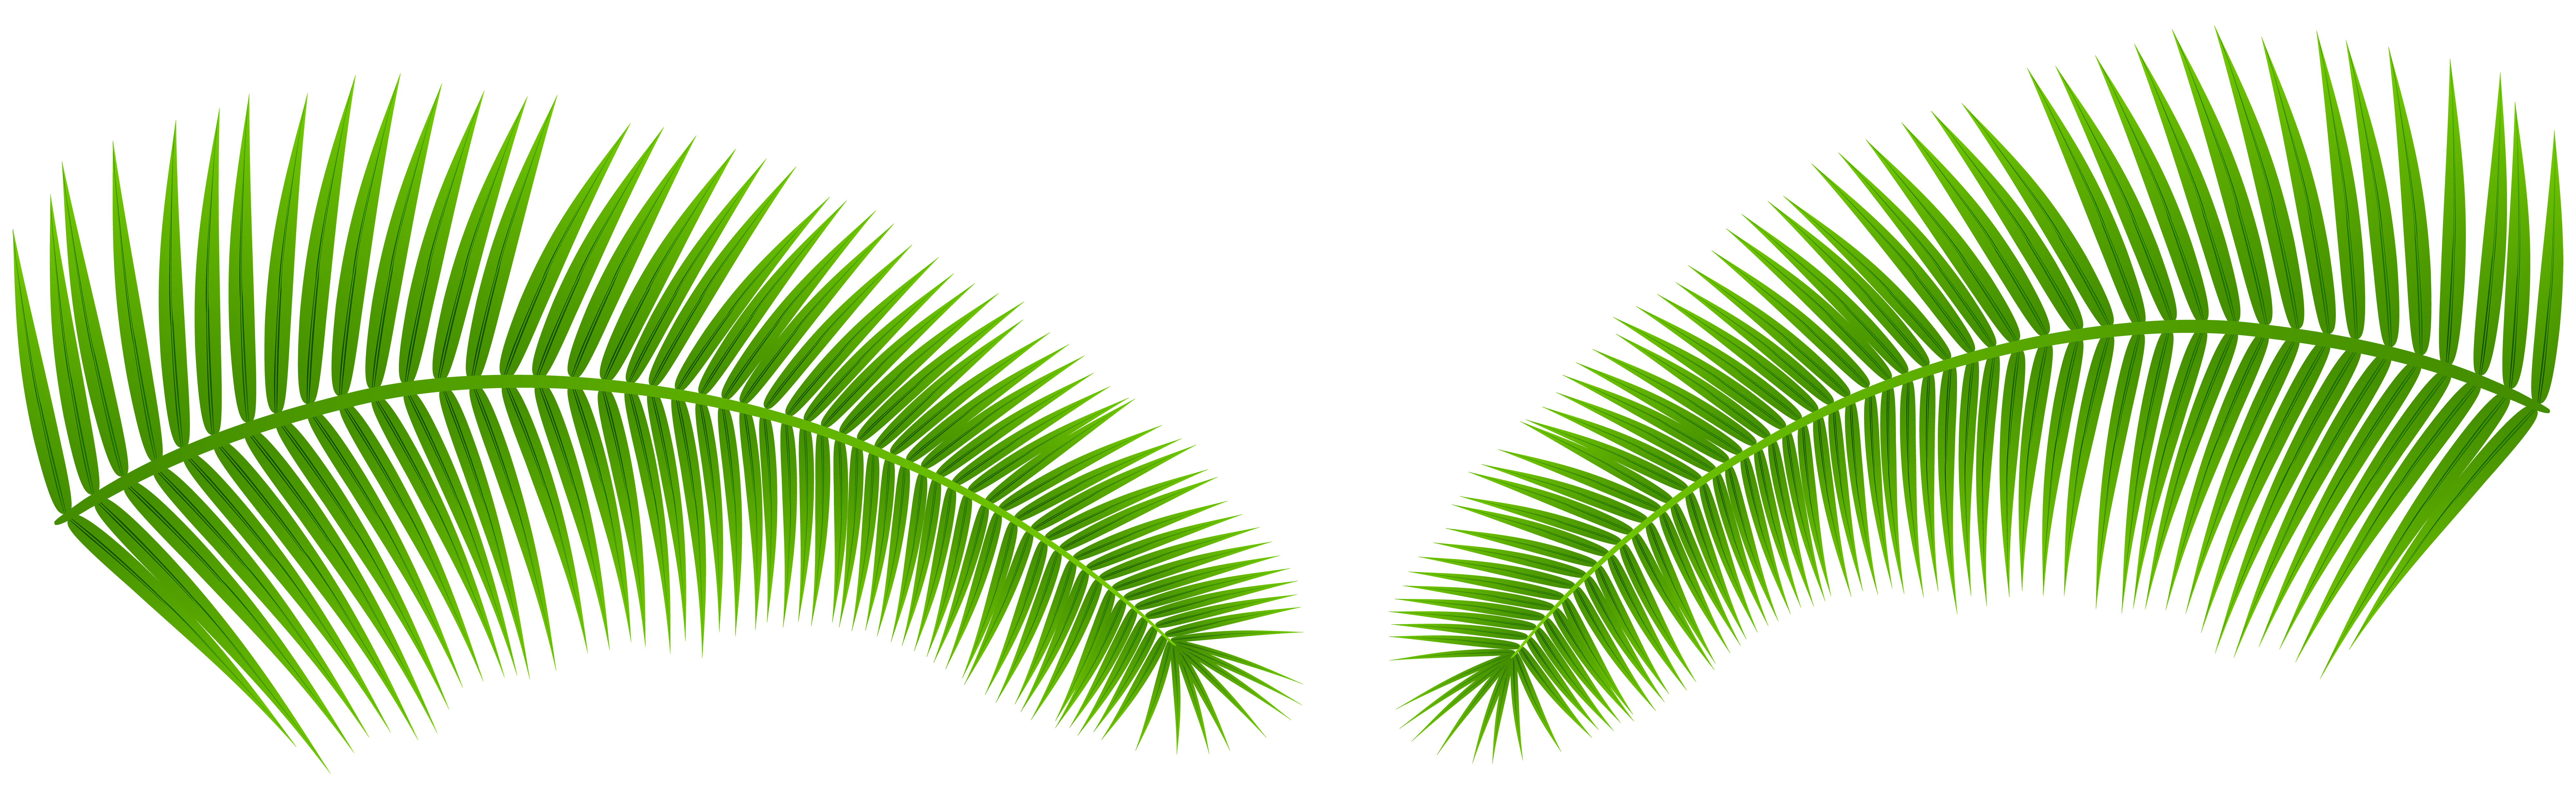 Leaves clip art image. Palm leaf transparent png image transparent stock